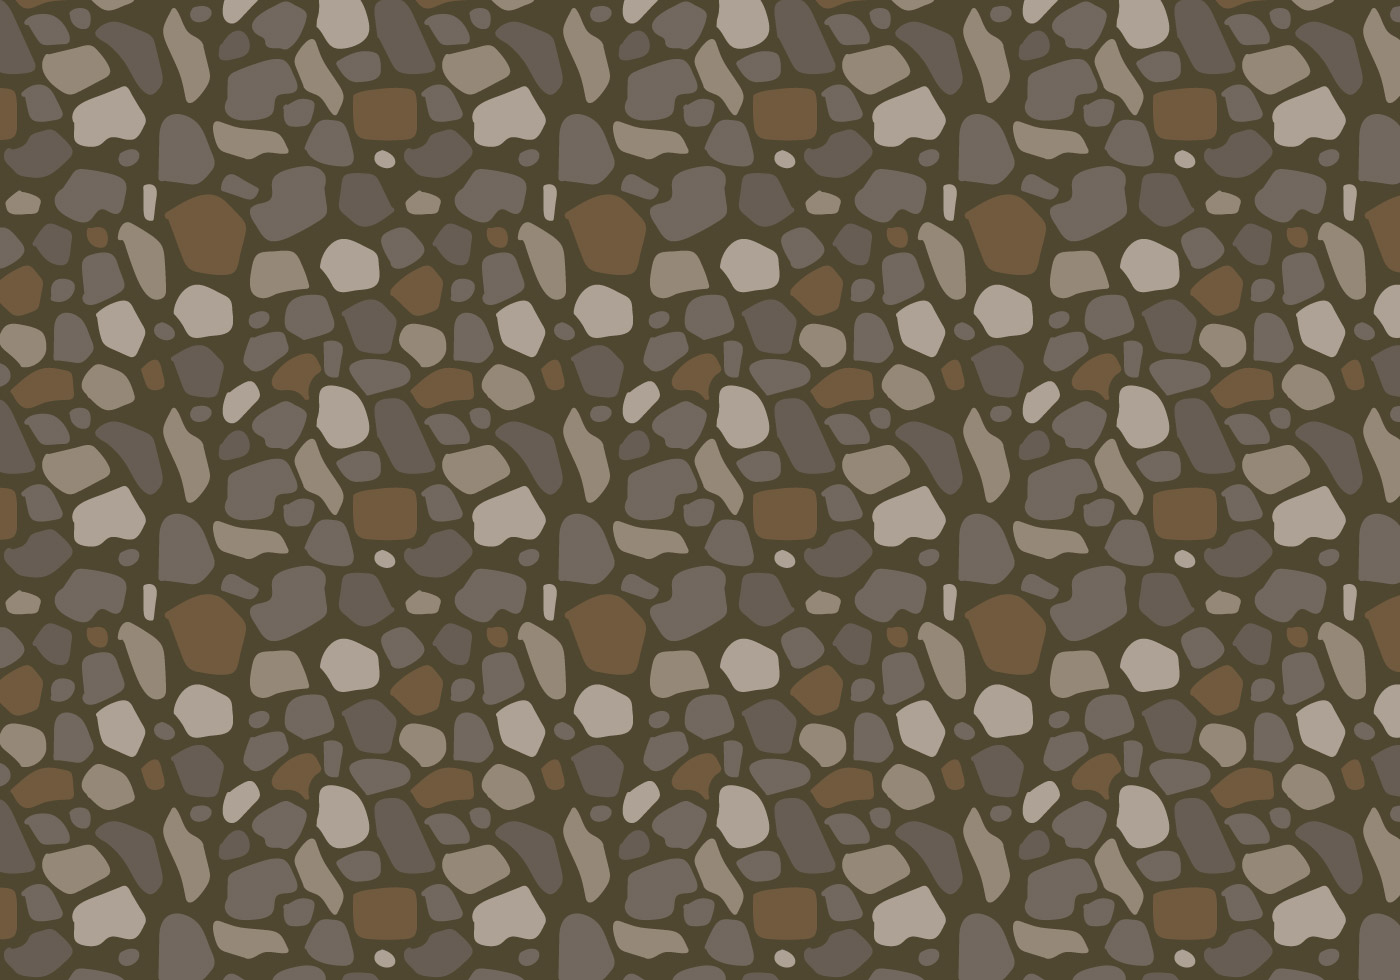 Stone vector free download